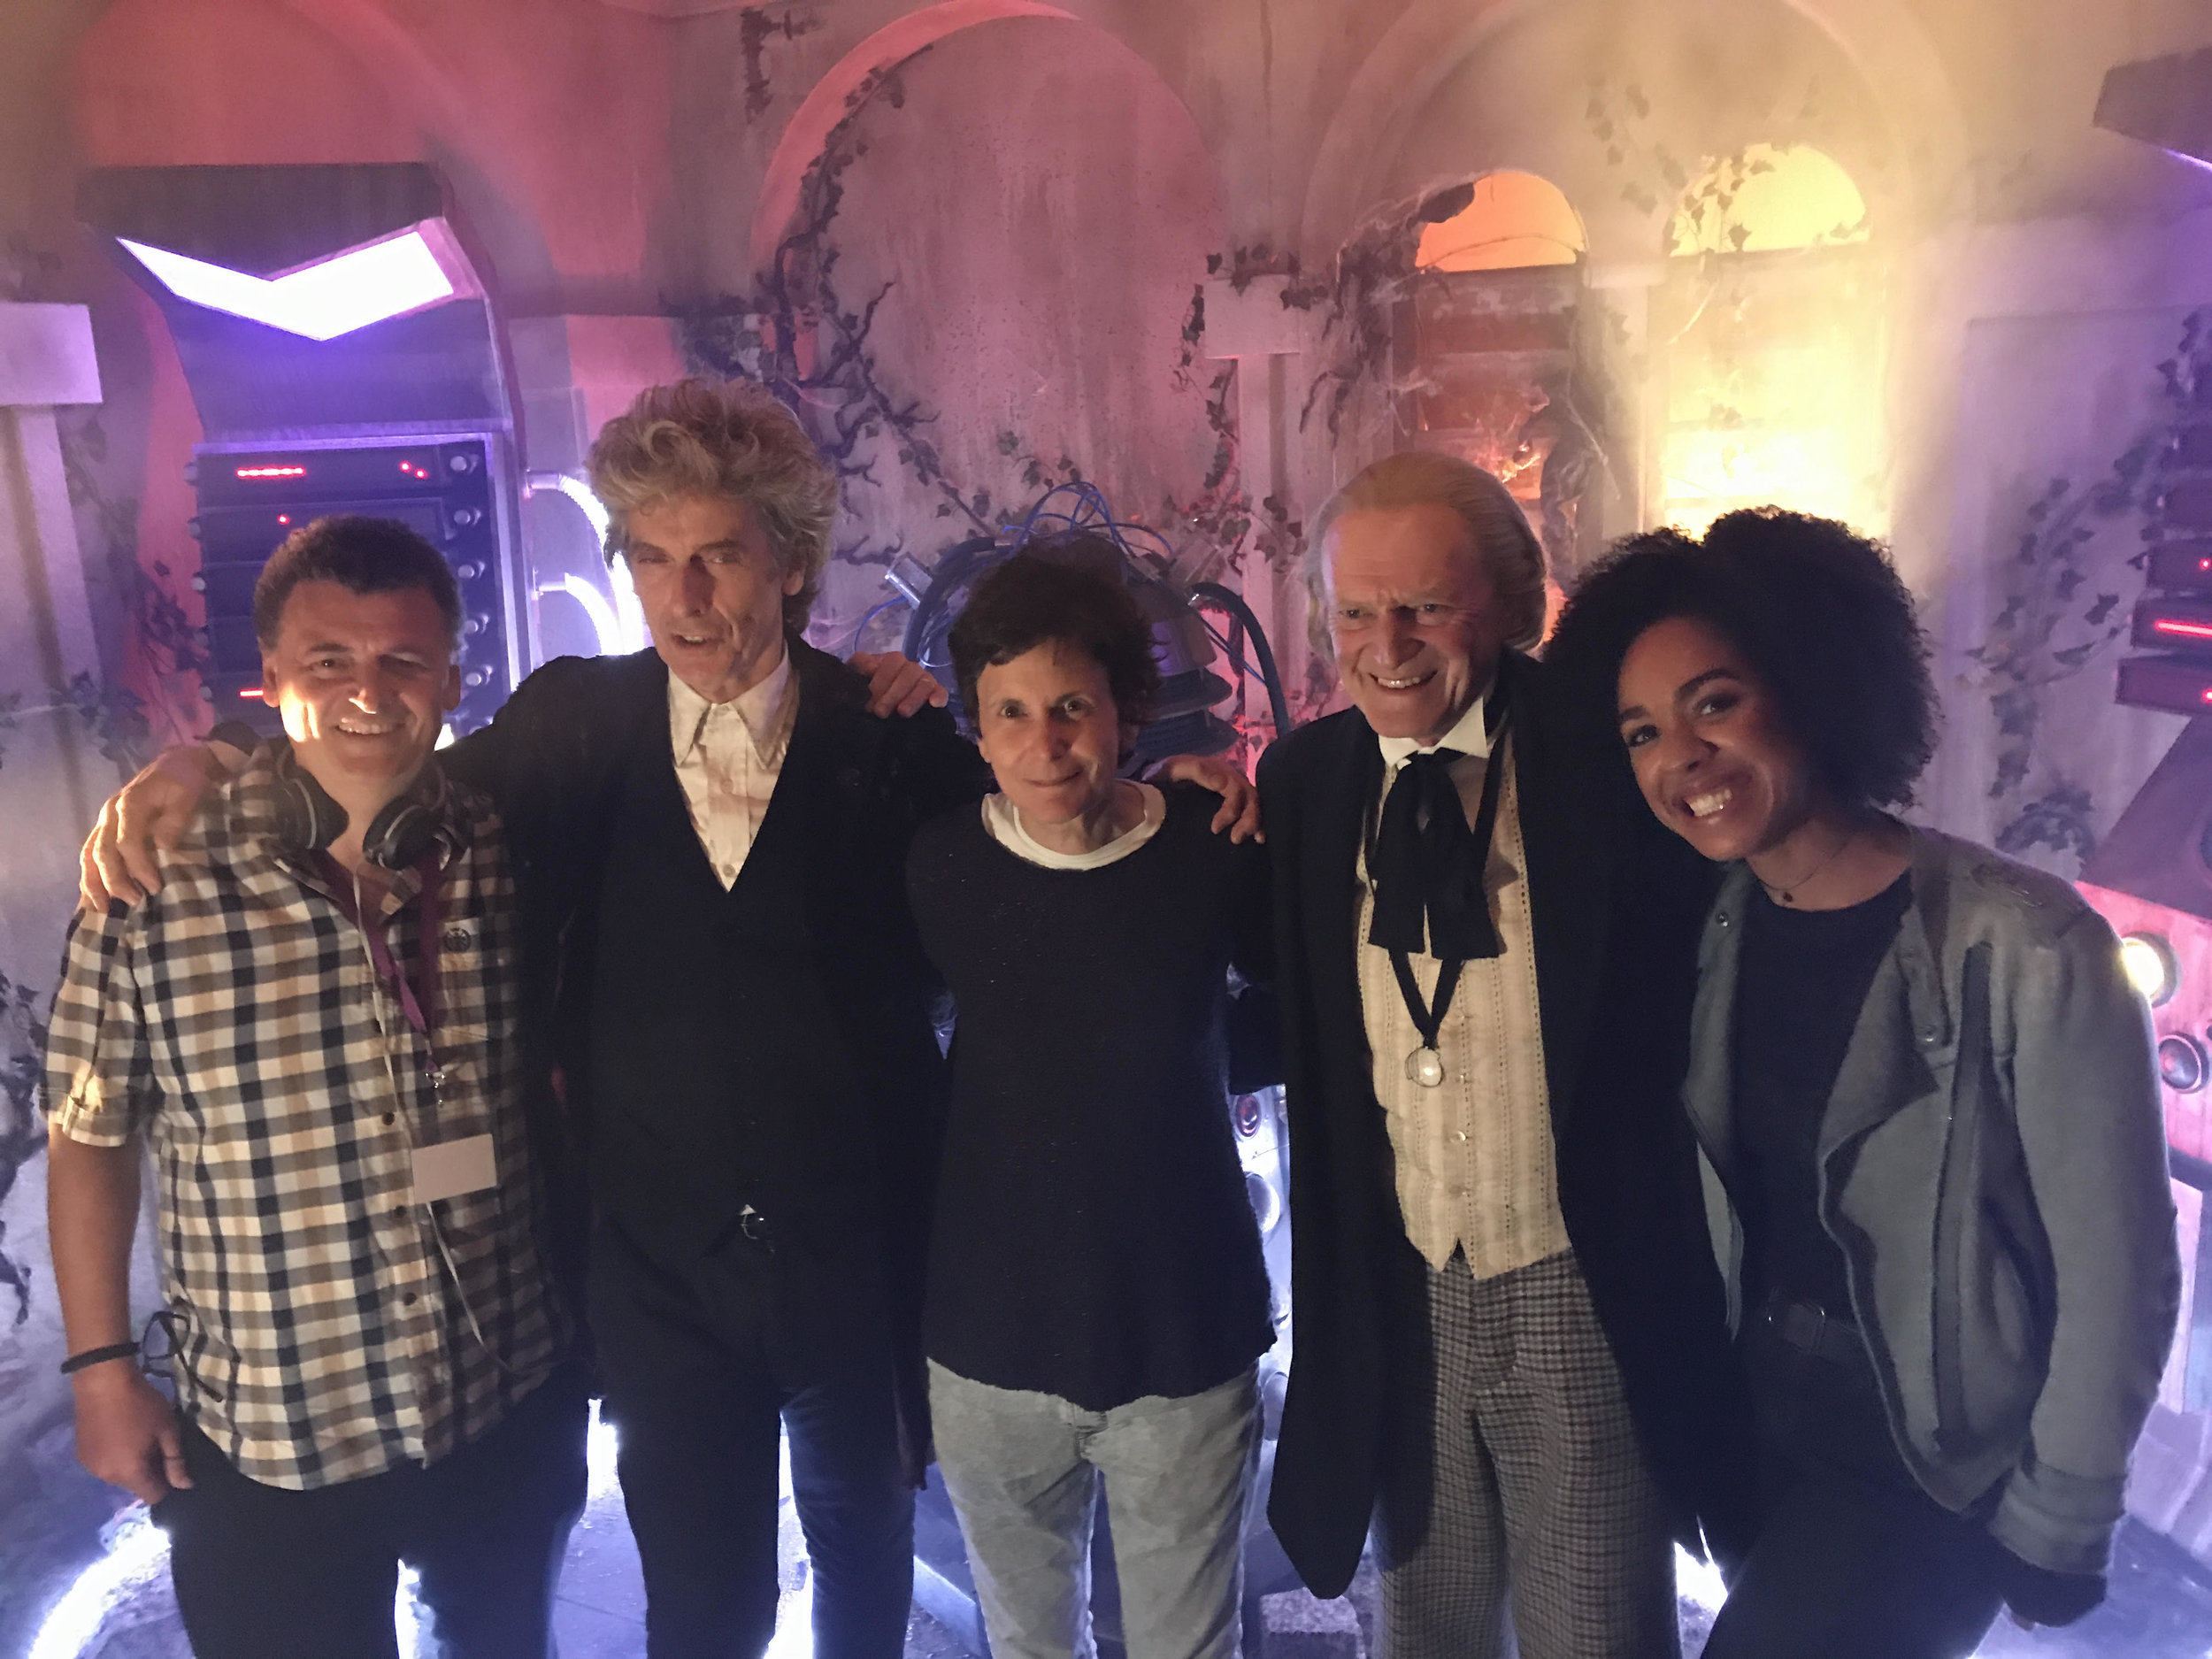 """Steven Moffat, Peter Capaldi, Rachel Talalay, David Bradley, and Pearl Mackie on the set of """"Twice Upon a Time.""""Photo courtesy of Rachel Talalay"""